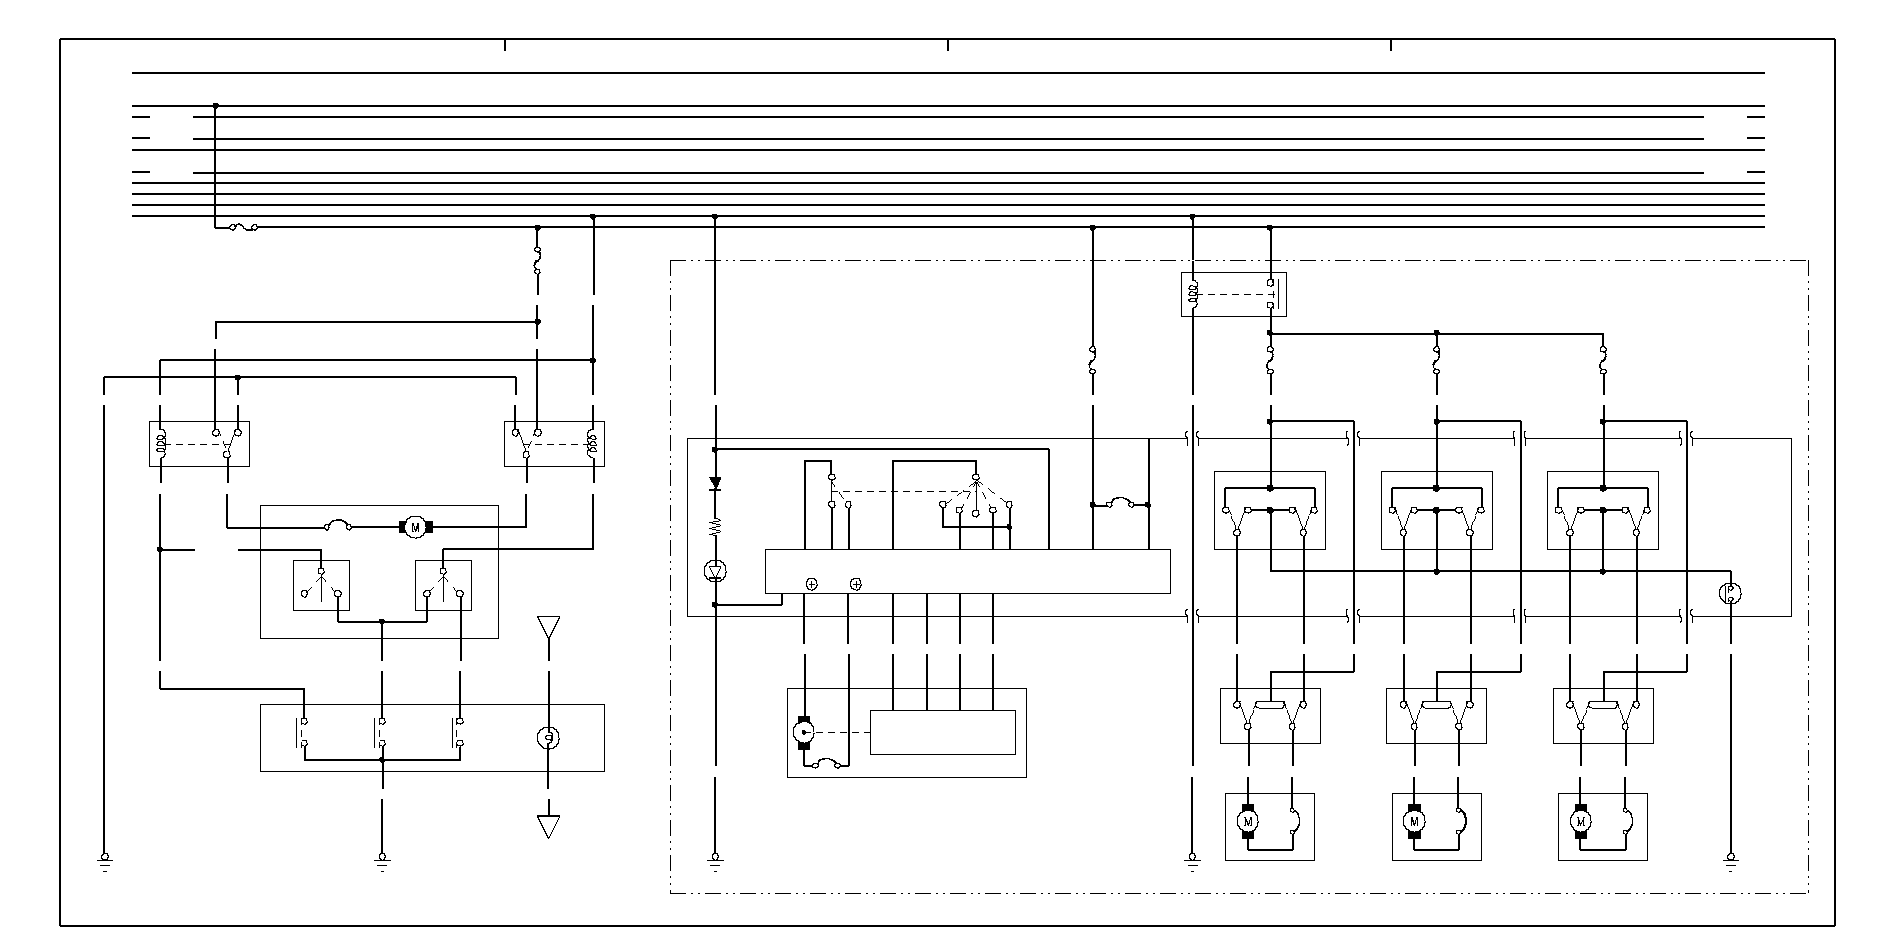 Cr 500 Wiring Diagram furthermore Wiring And Connectors Locations Of Honda Accord Air Conditioning System 94 07 furthermore Toyota Rav4 Horn Relay Location together with Honda Crv Power Steering Pump Location besides Discussion T4231 ds547618. on fuse box for honda crv 2002